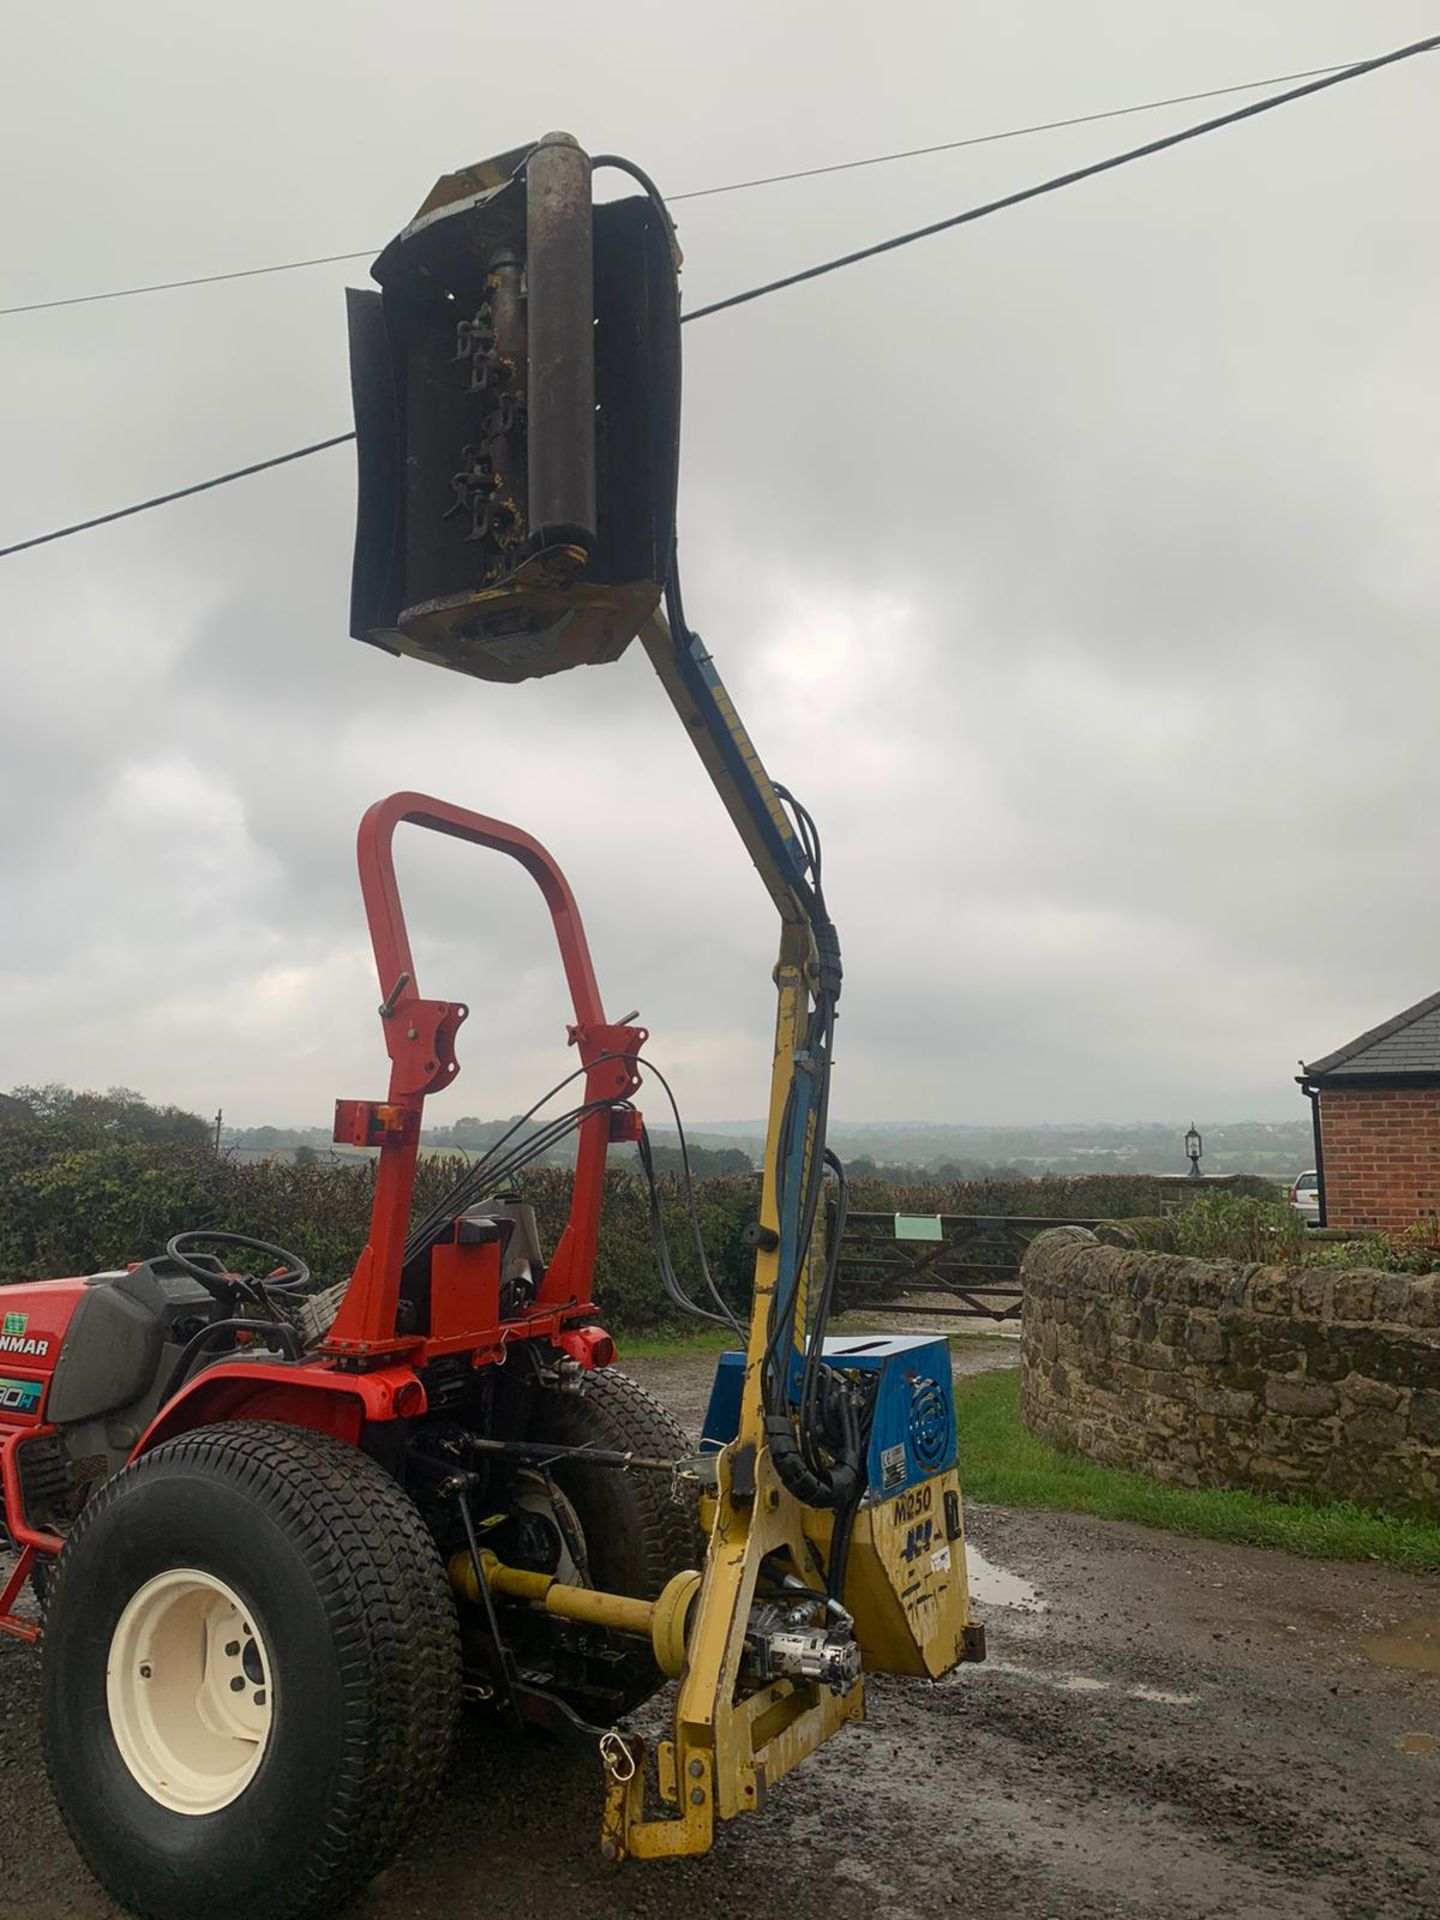 Lot 30 - 2007 PORT AGRI M250 HEDGE CUTTER, RUNS AND WORKS, SUITABLE FOR COMPACT TRACTOR *PLUS VAT*